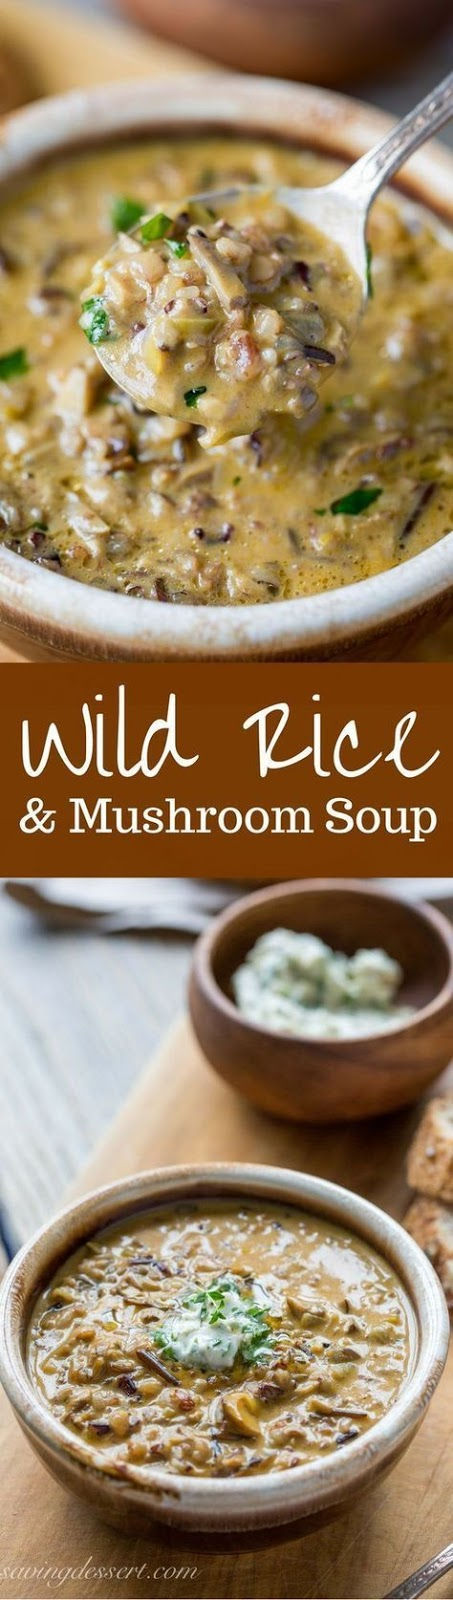 The Best Wild Rice & Mushroom Soup